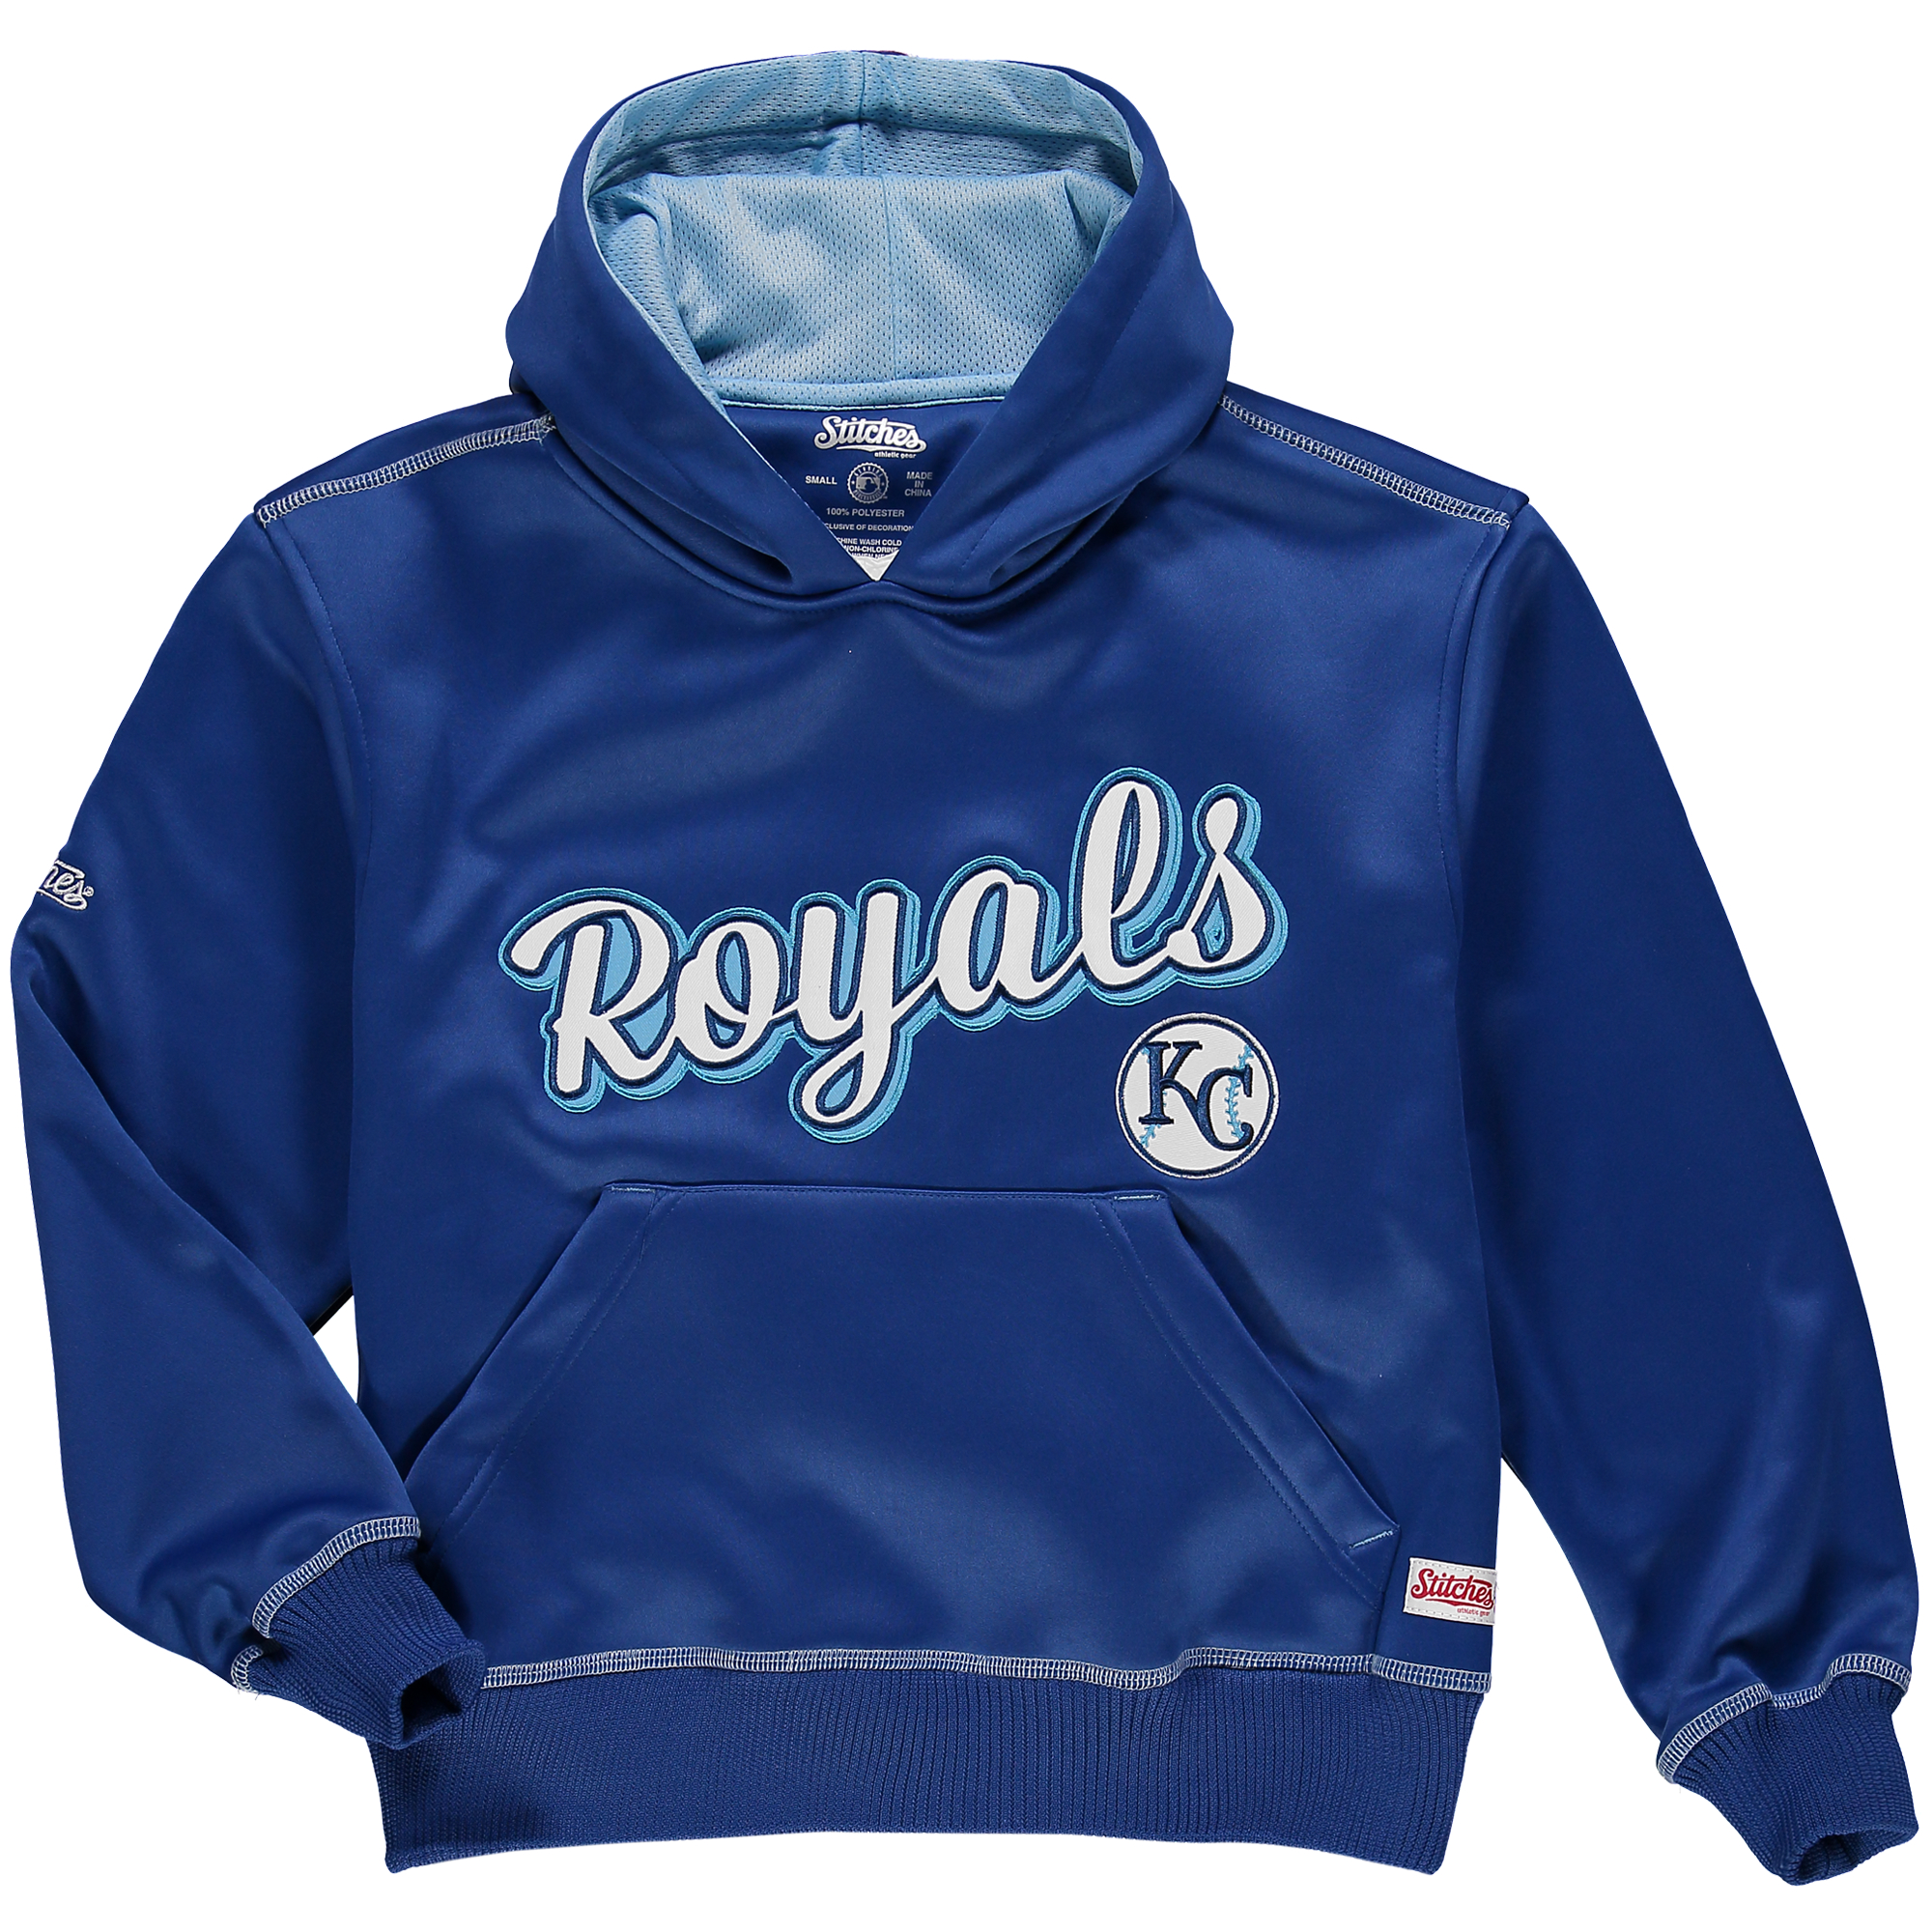 Kansas City Royals Stitches Youth Jumbo Pullover Hoodie - Royal